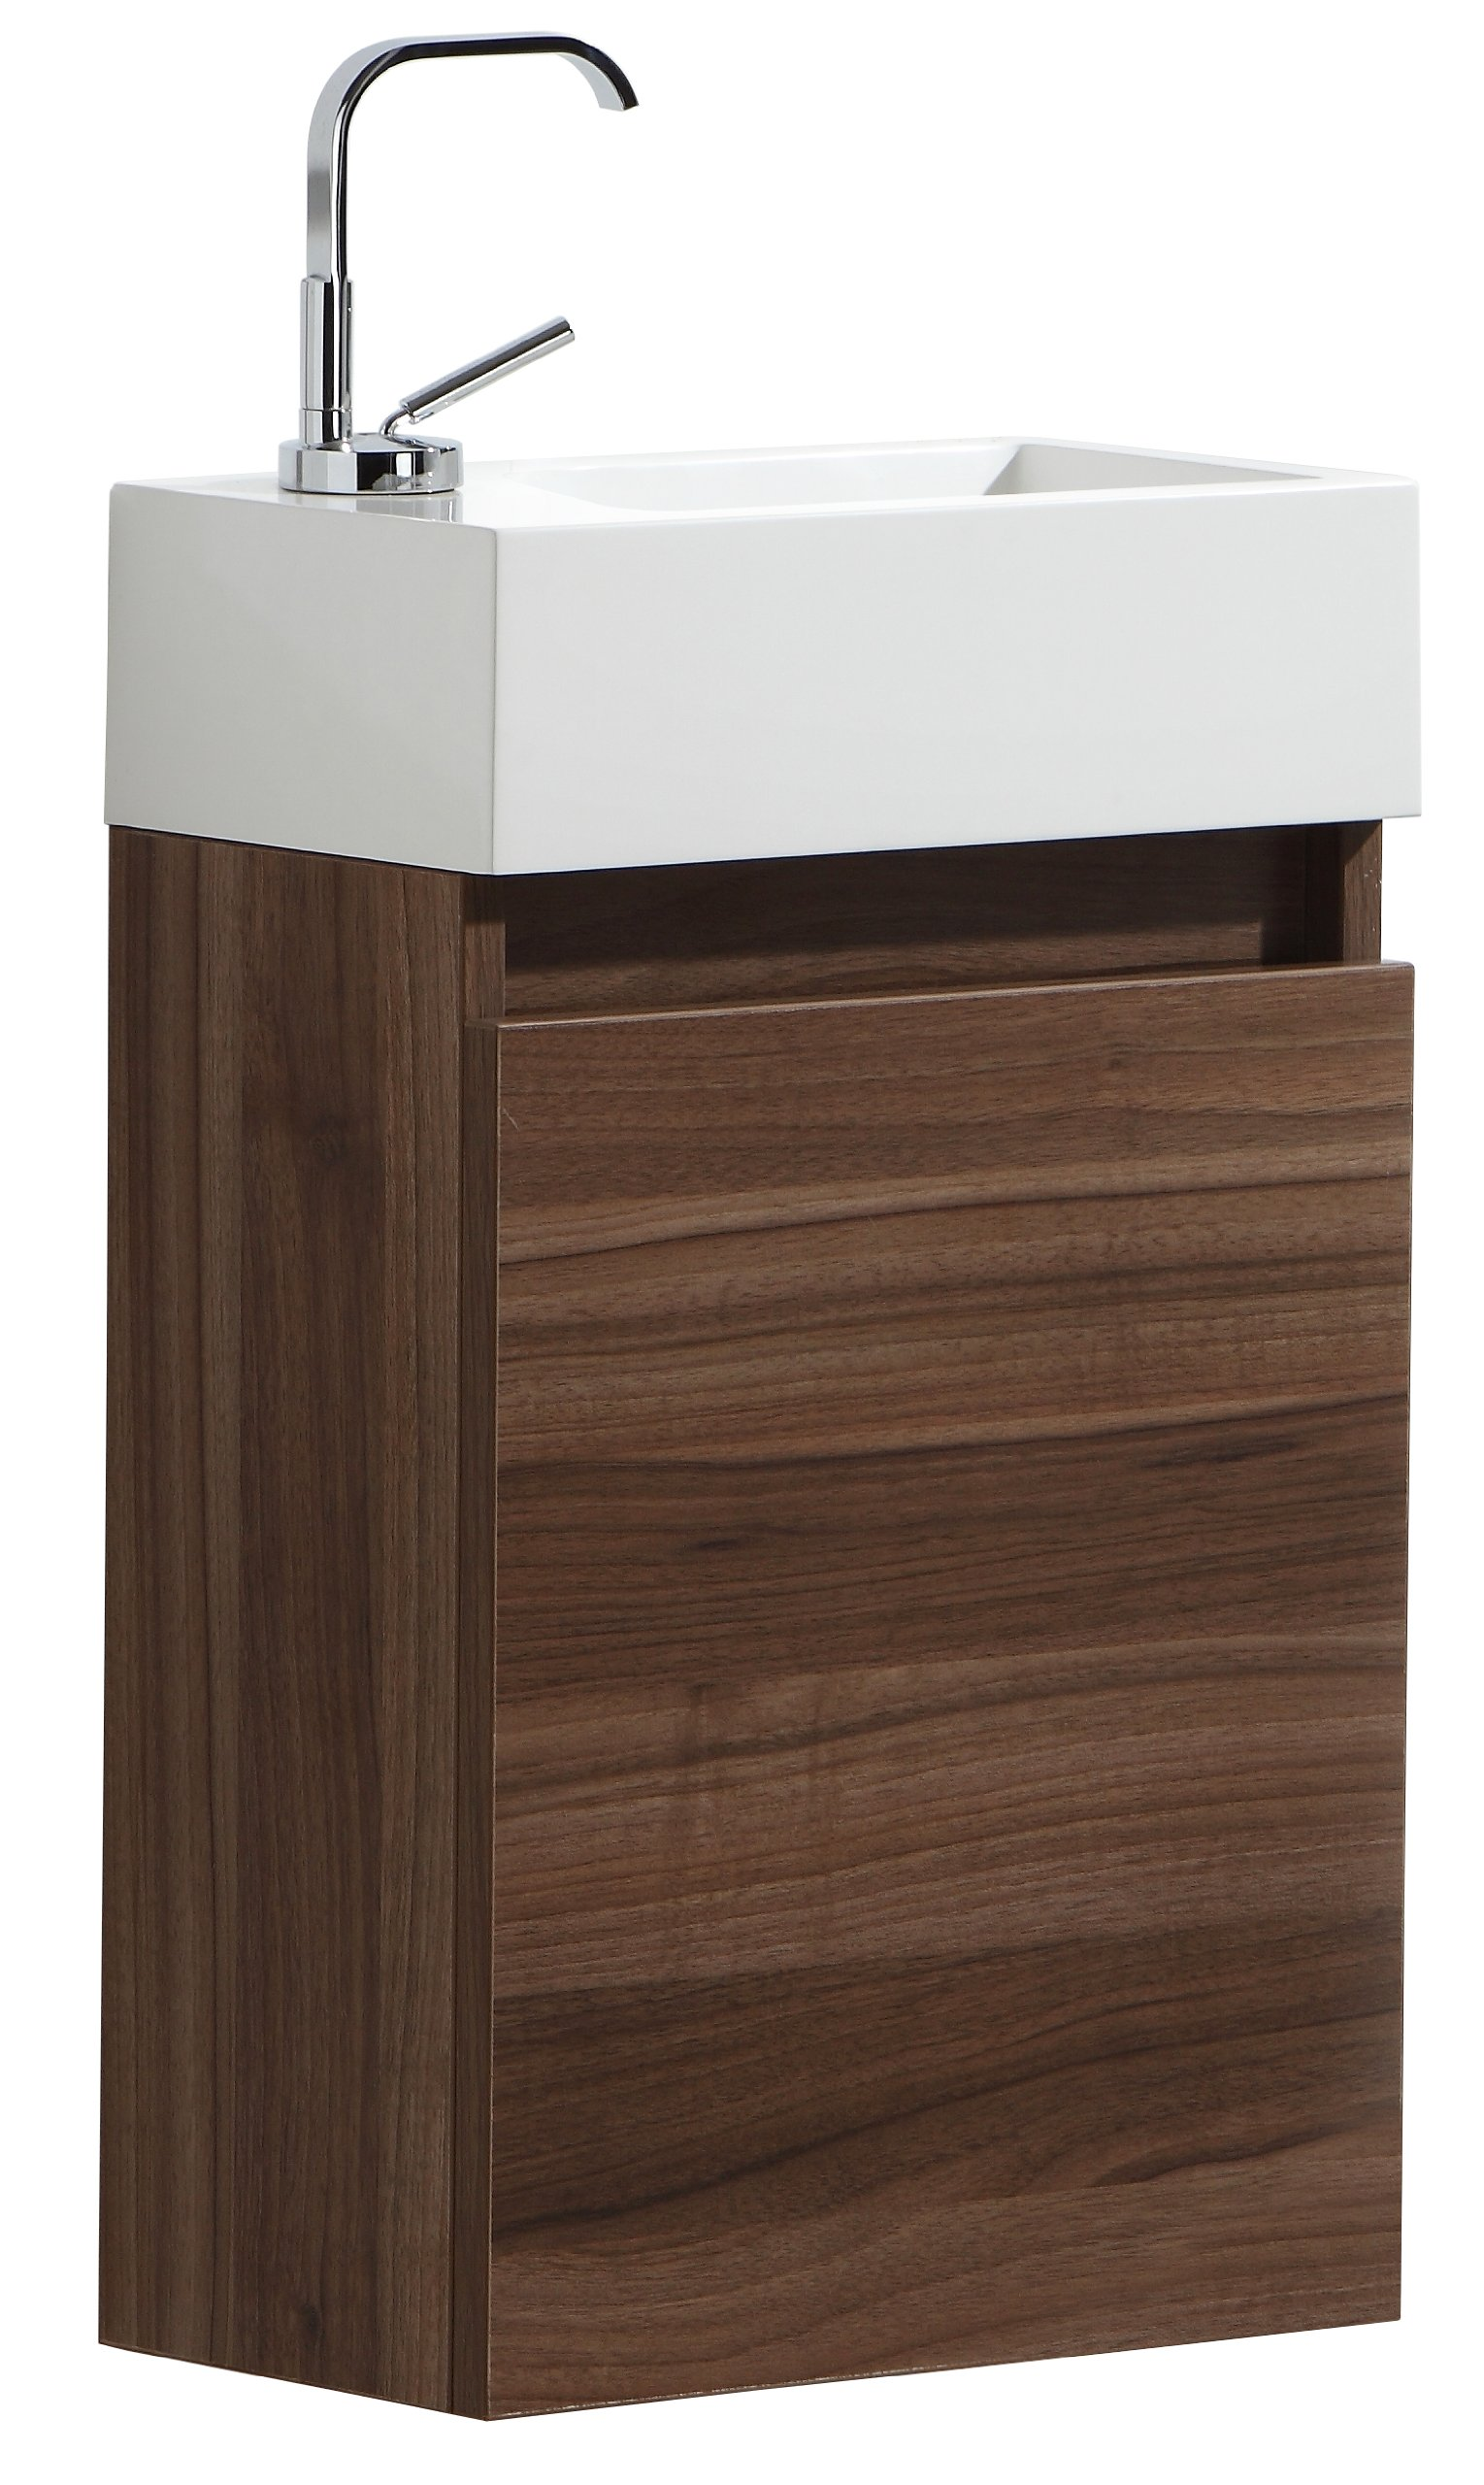 Luxo Marbre RELAX V40 W Relax Vanity with Synthetic Marble Sink, Walnut - Includes: single-door vanity with white synthetic marble sink, plug and single faucet hole Available in choice of two colors: Walnut or Alamo Oak Rectangular basin 15.75-Inch x 4.5-Inch x 8.75-Inch, 1.5-Inch drain opening - bathroom-vanities, bathroom-fixtures-hardware, bathroom - 812p3%2BXH6AL -